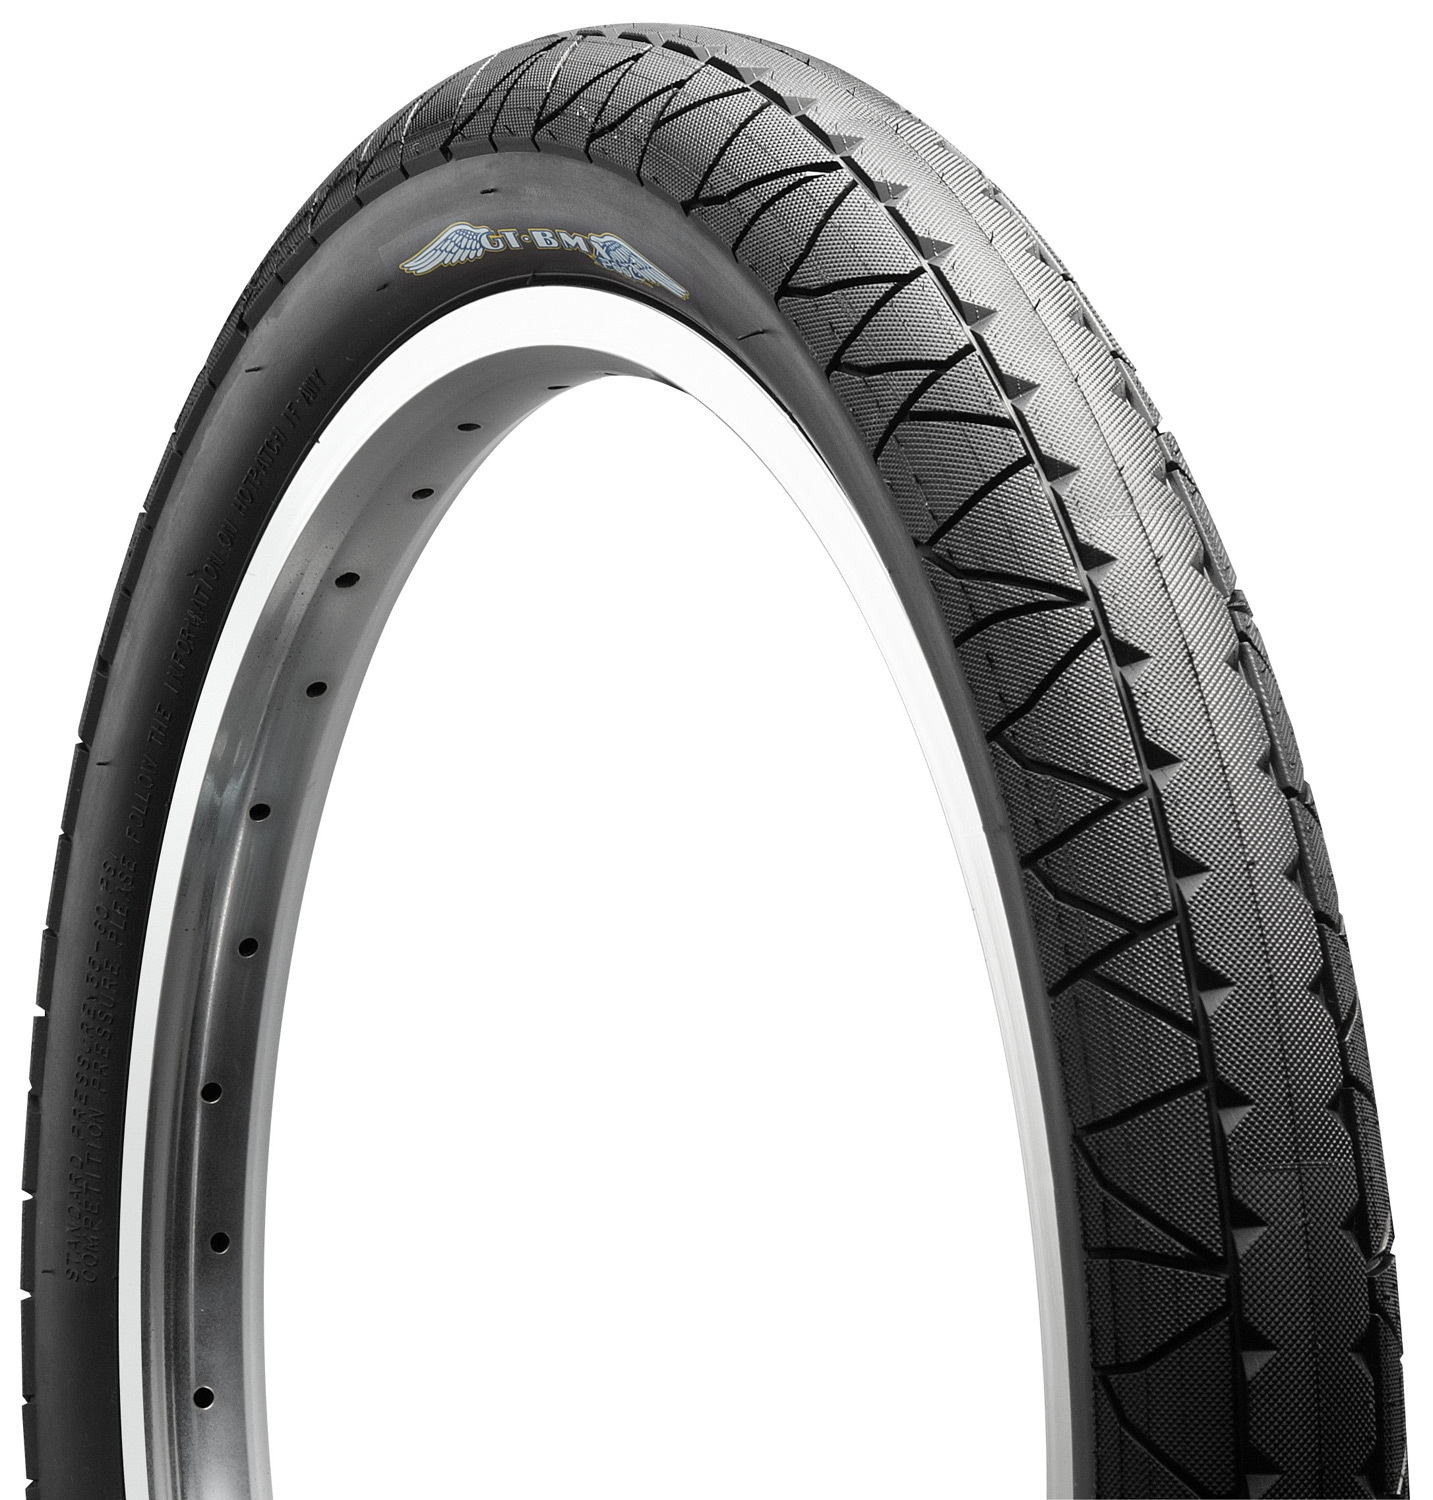 "BMX GT's BMX Street bike tires are super smooth rolling with a knurled surface for ultimate traction on hard surfaces. It comes in 2 sizes: 20"" x 2.3"" and 20"" x 2.1"", each has wire bead, stiffer sidewall for impract resistance. Alternatively, size 20"" x 2.3"" and 20"" x 2.1"", each made with Kevlar, skinwall 60 tpi, foldable and lightweight. - $19.99"